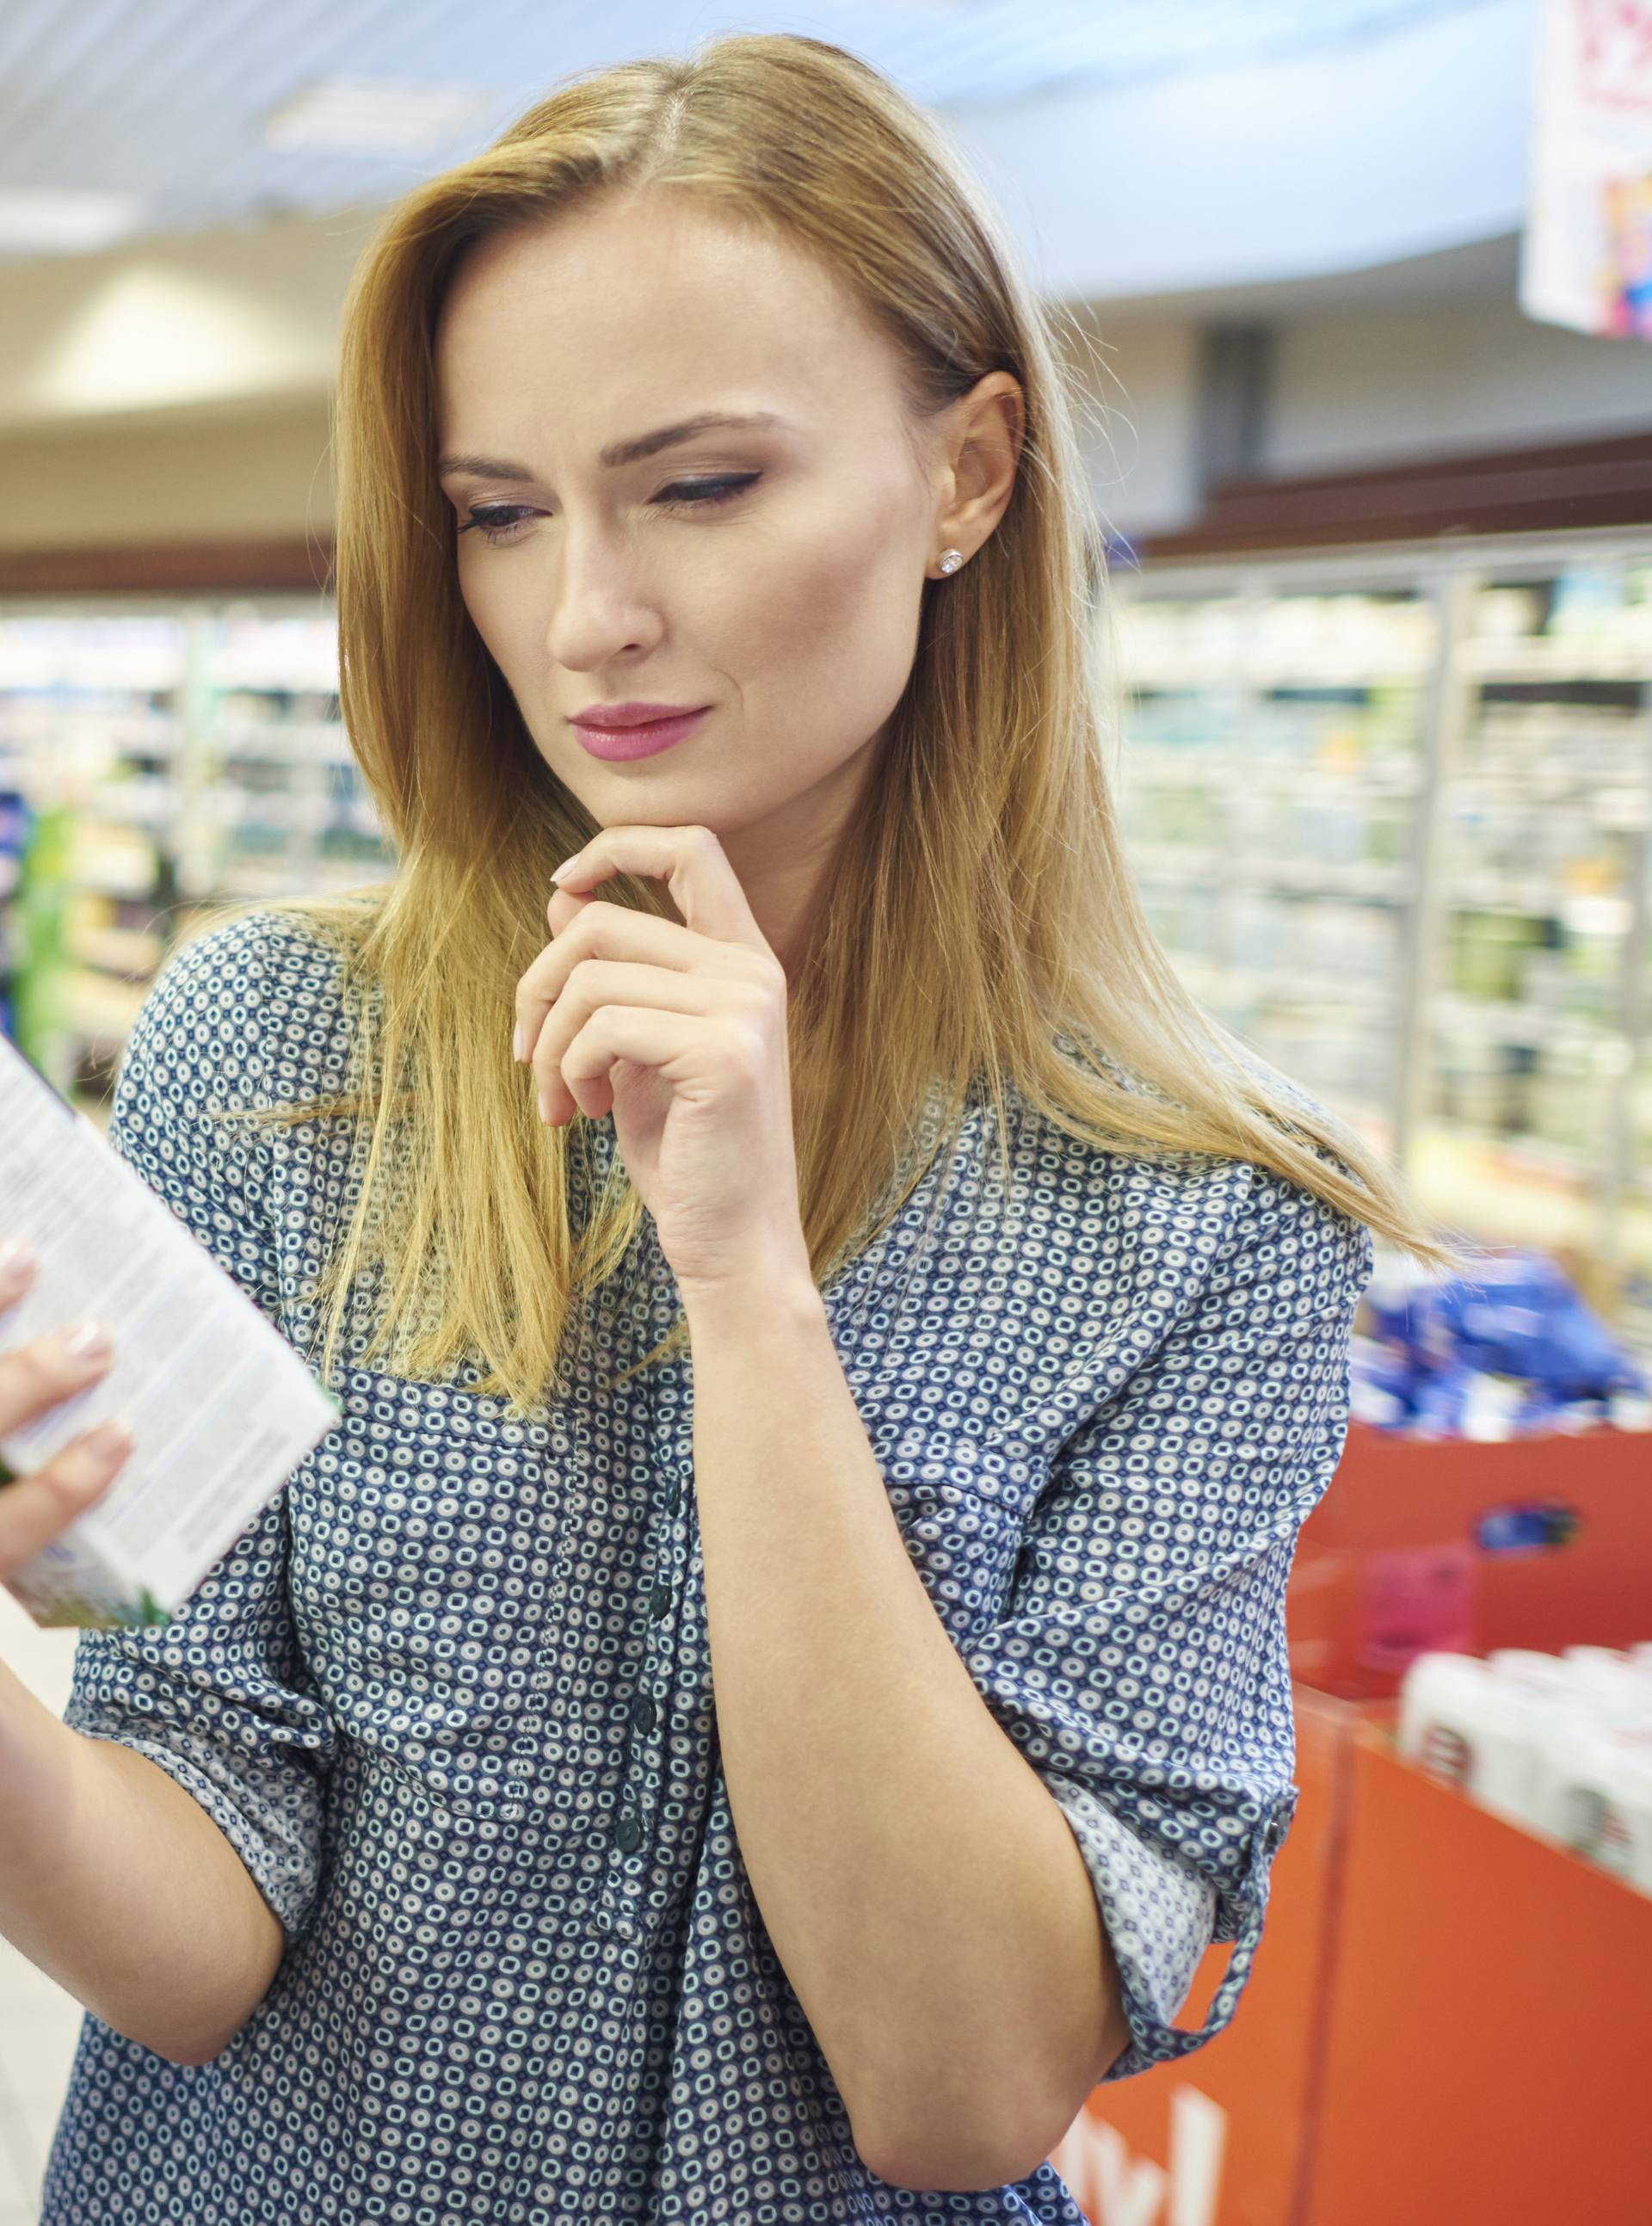 Young woman reading label milk